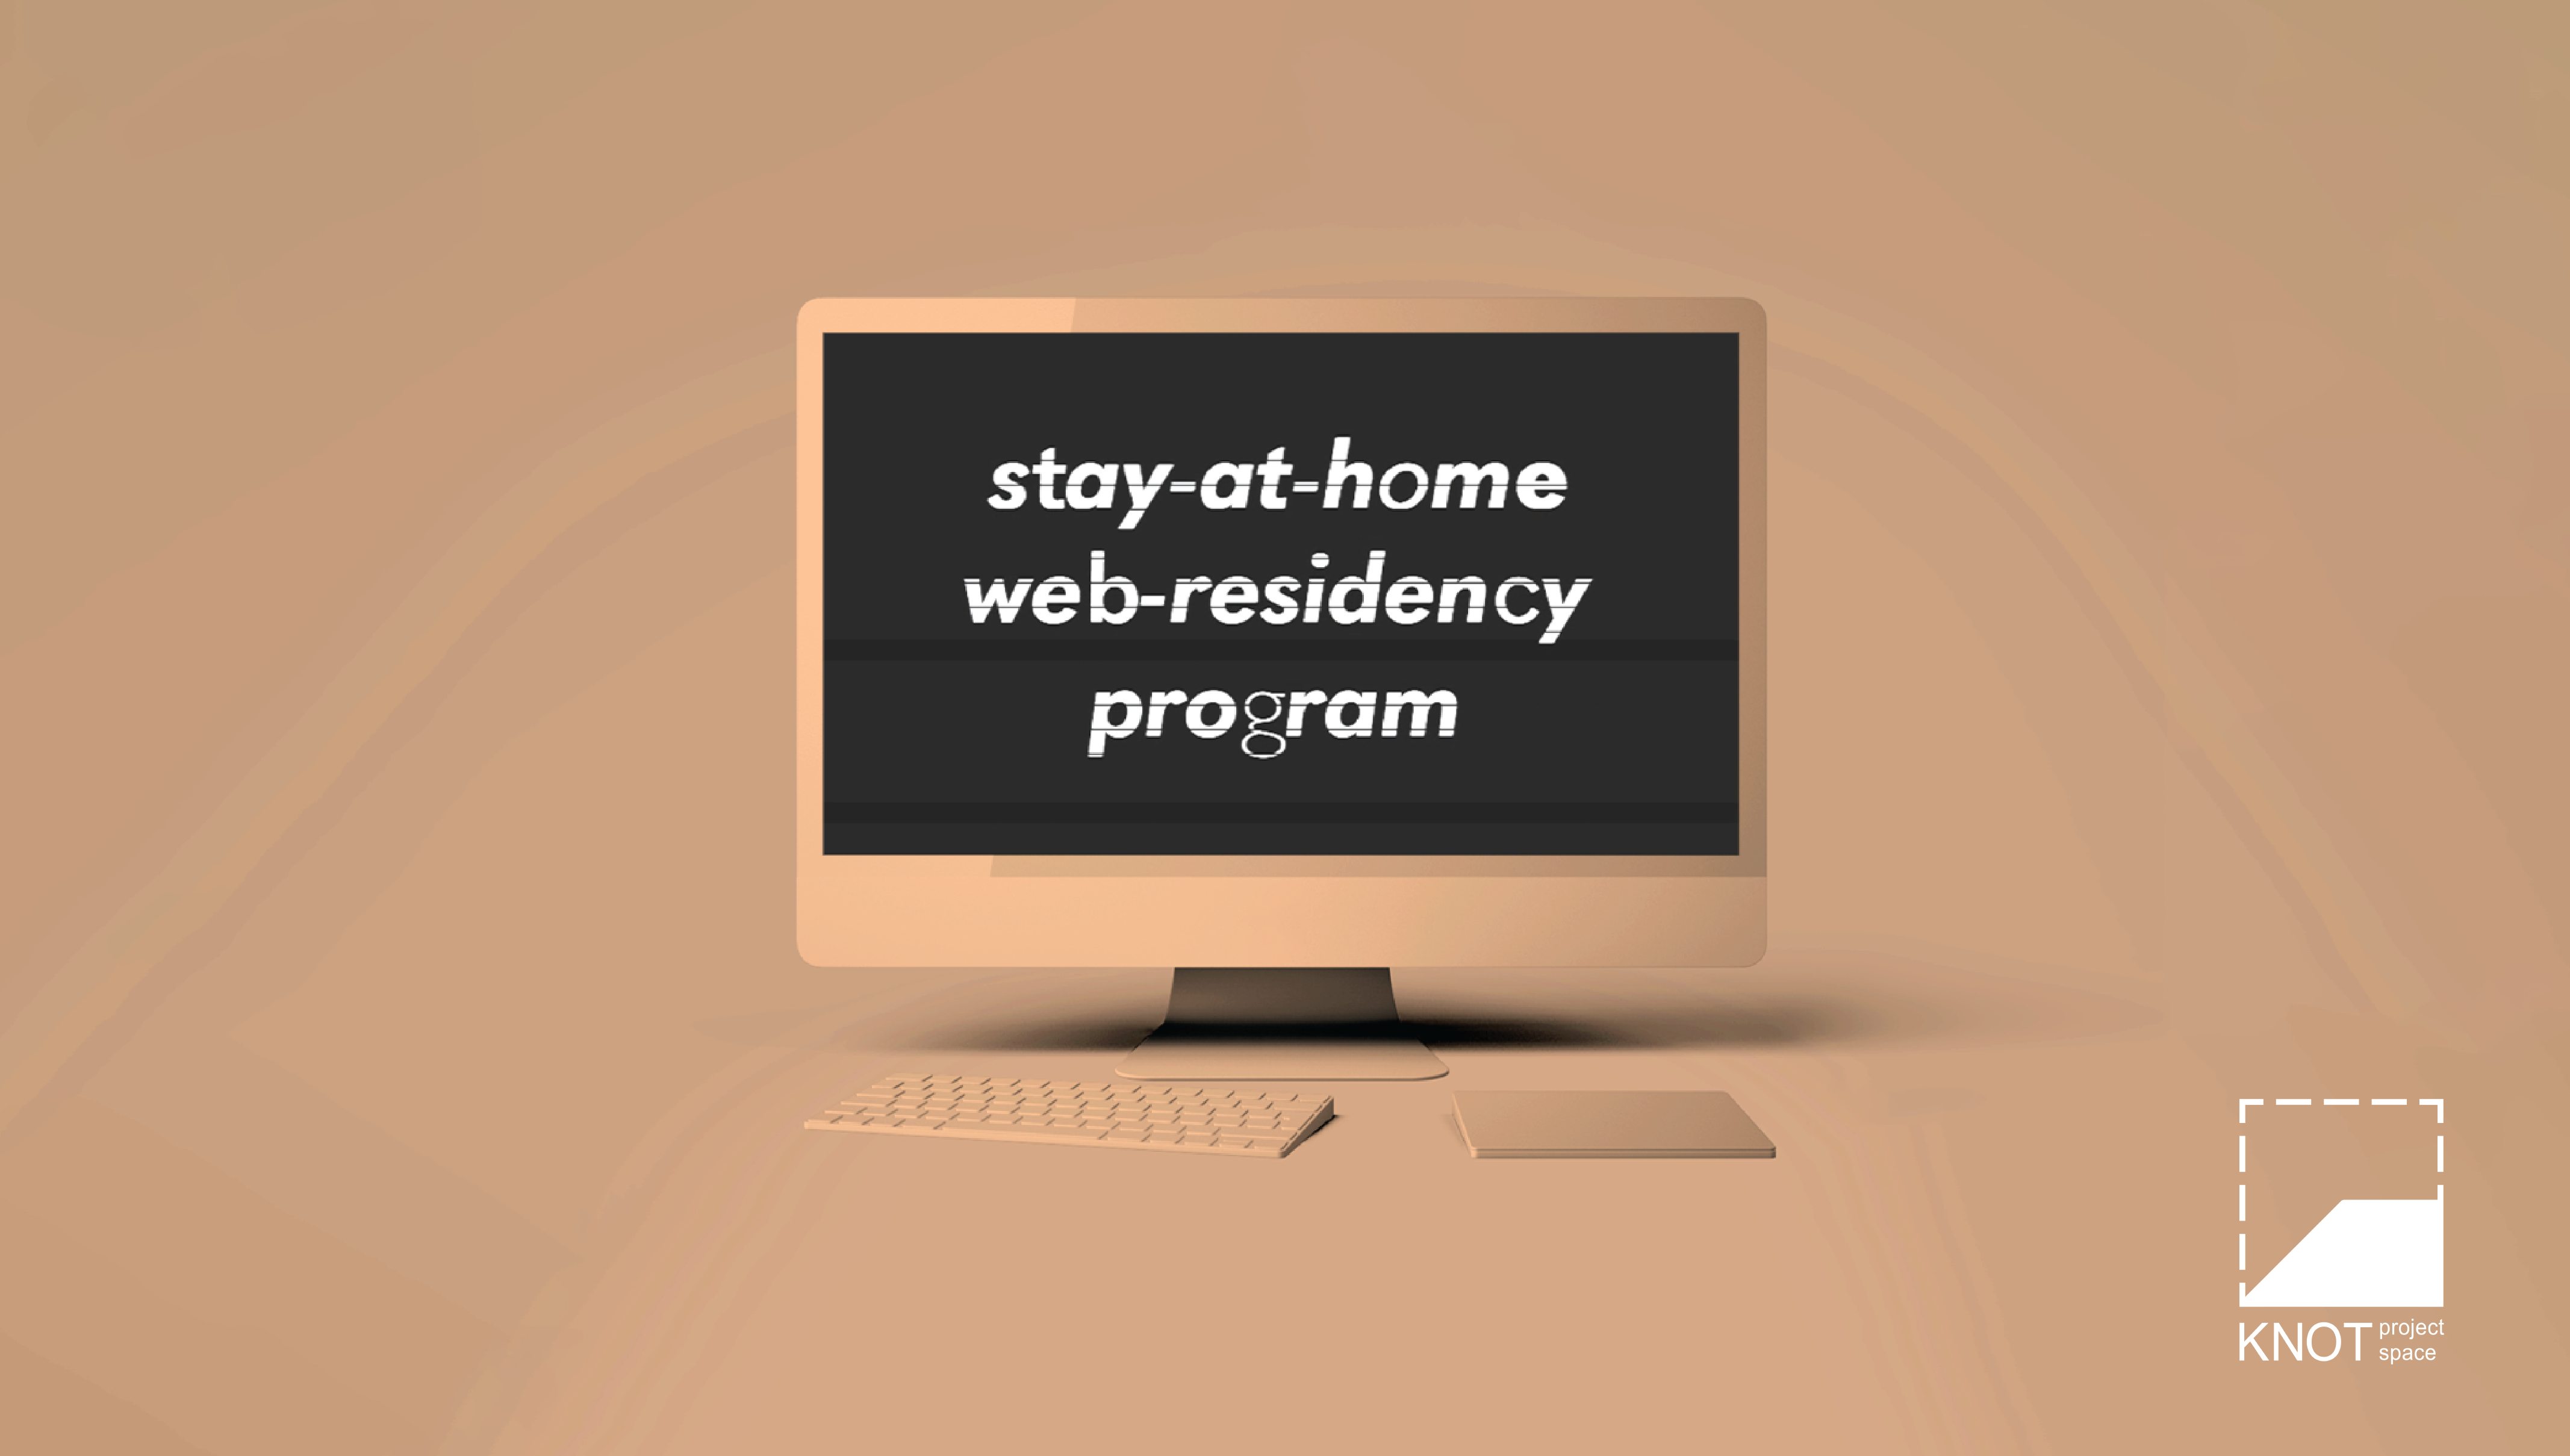 stay-at-home-web-residency program